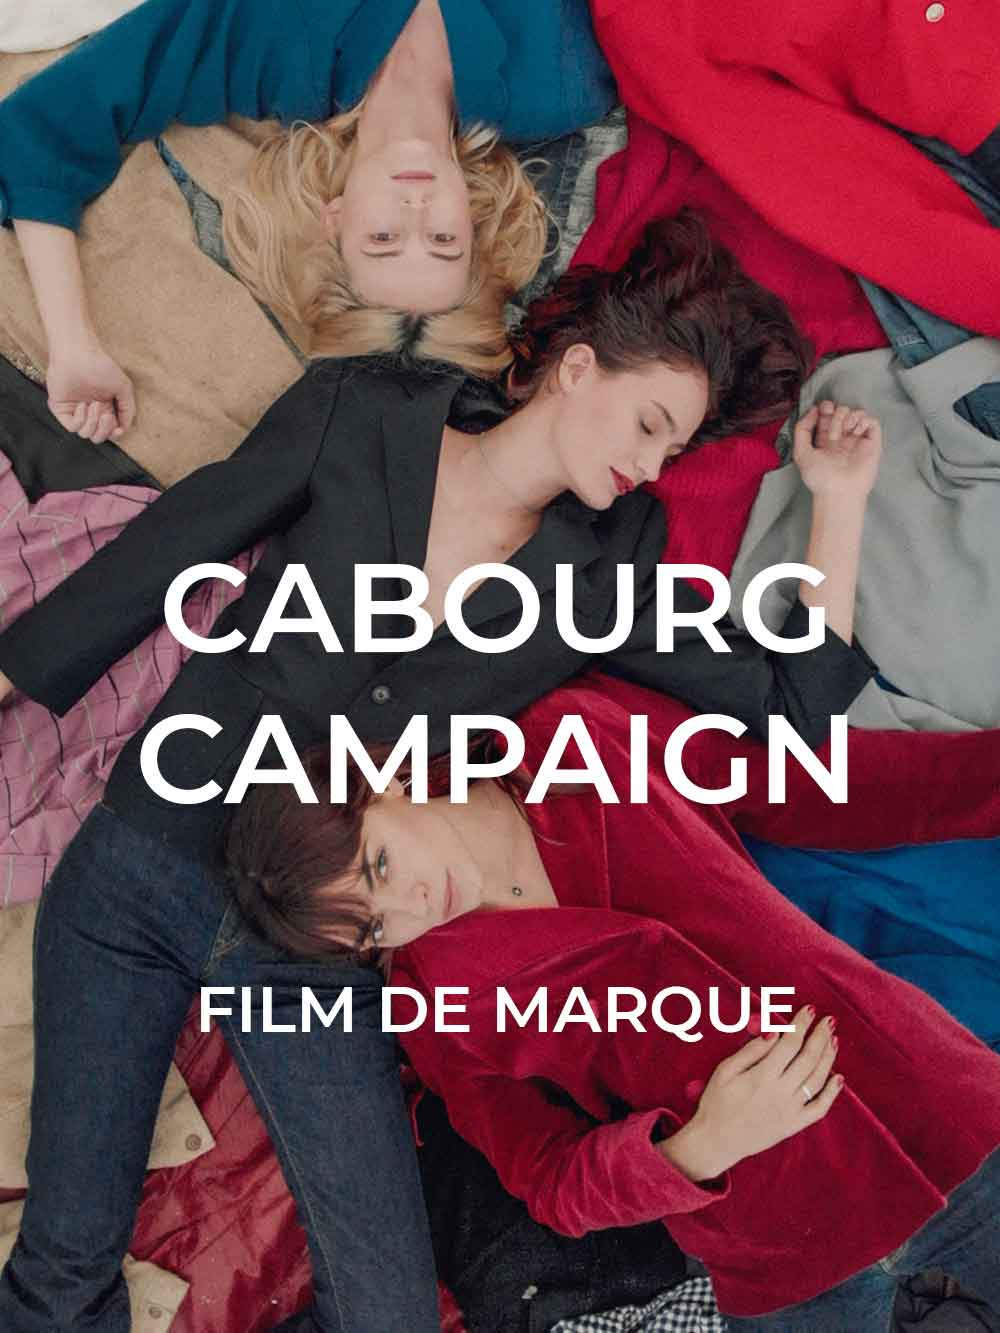 CAbourg-campaign-typo.jpg